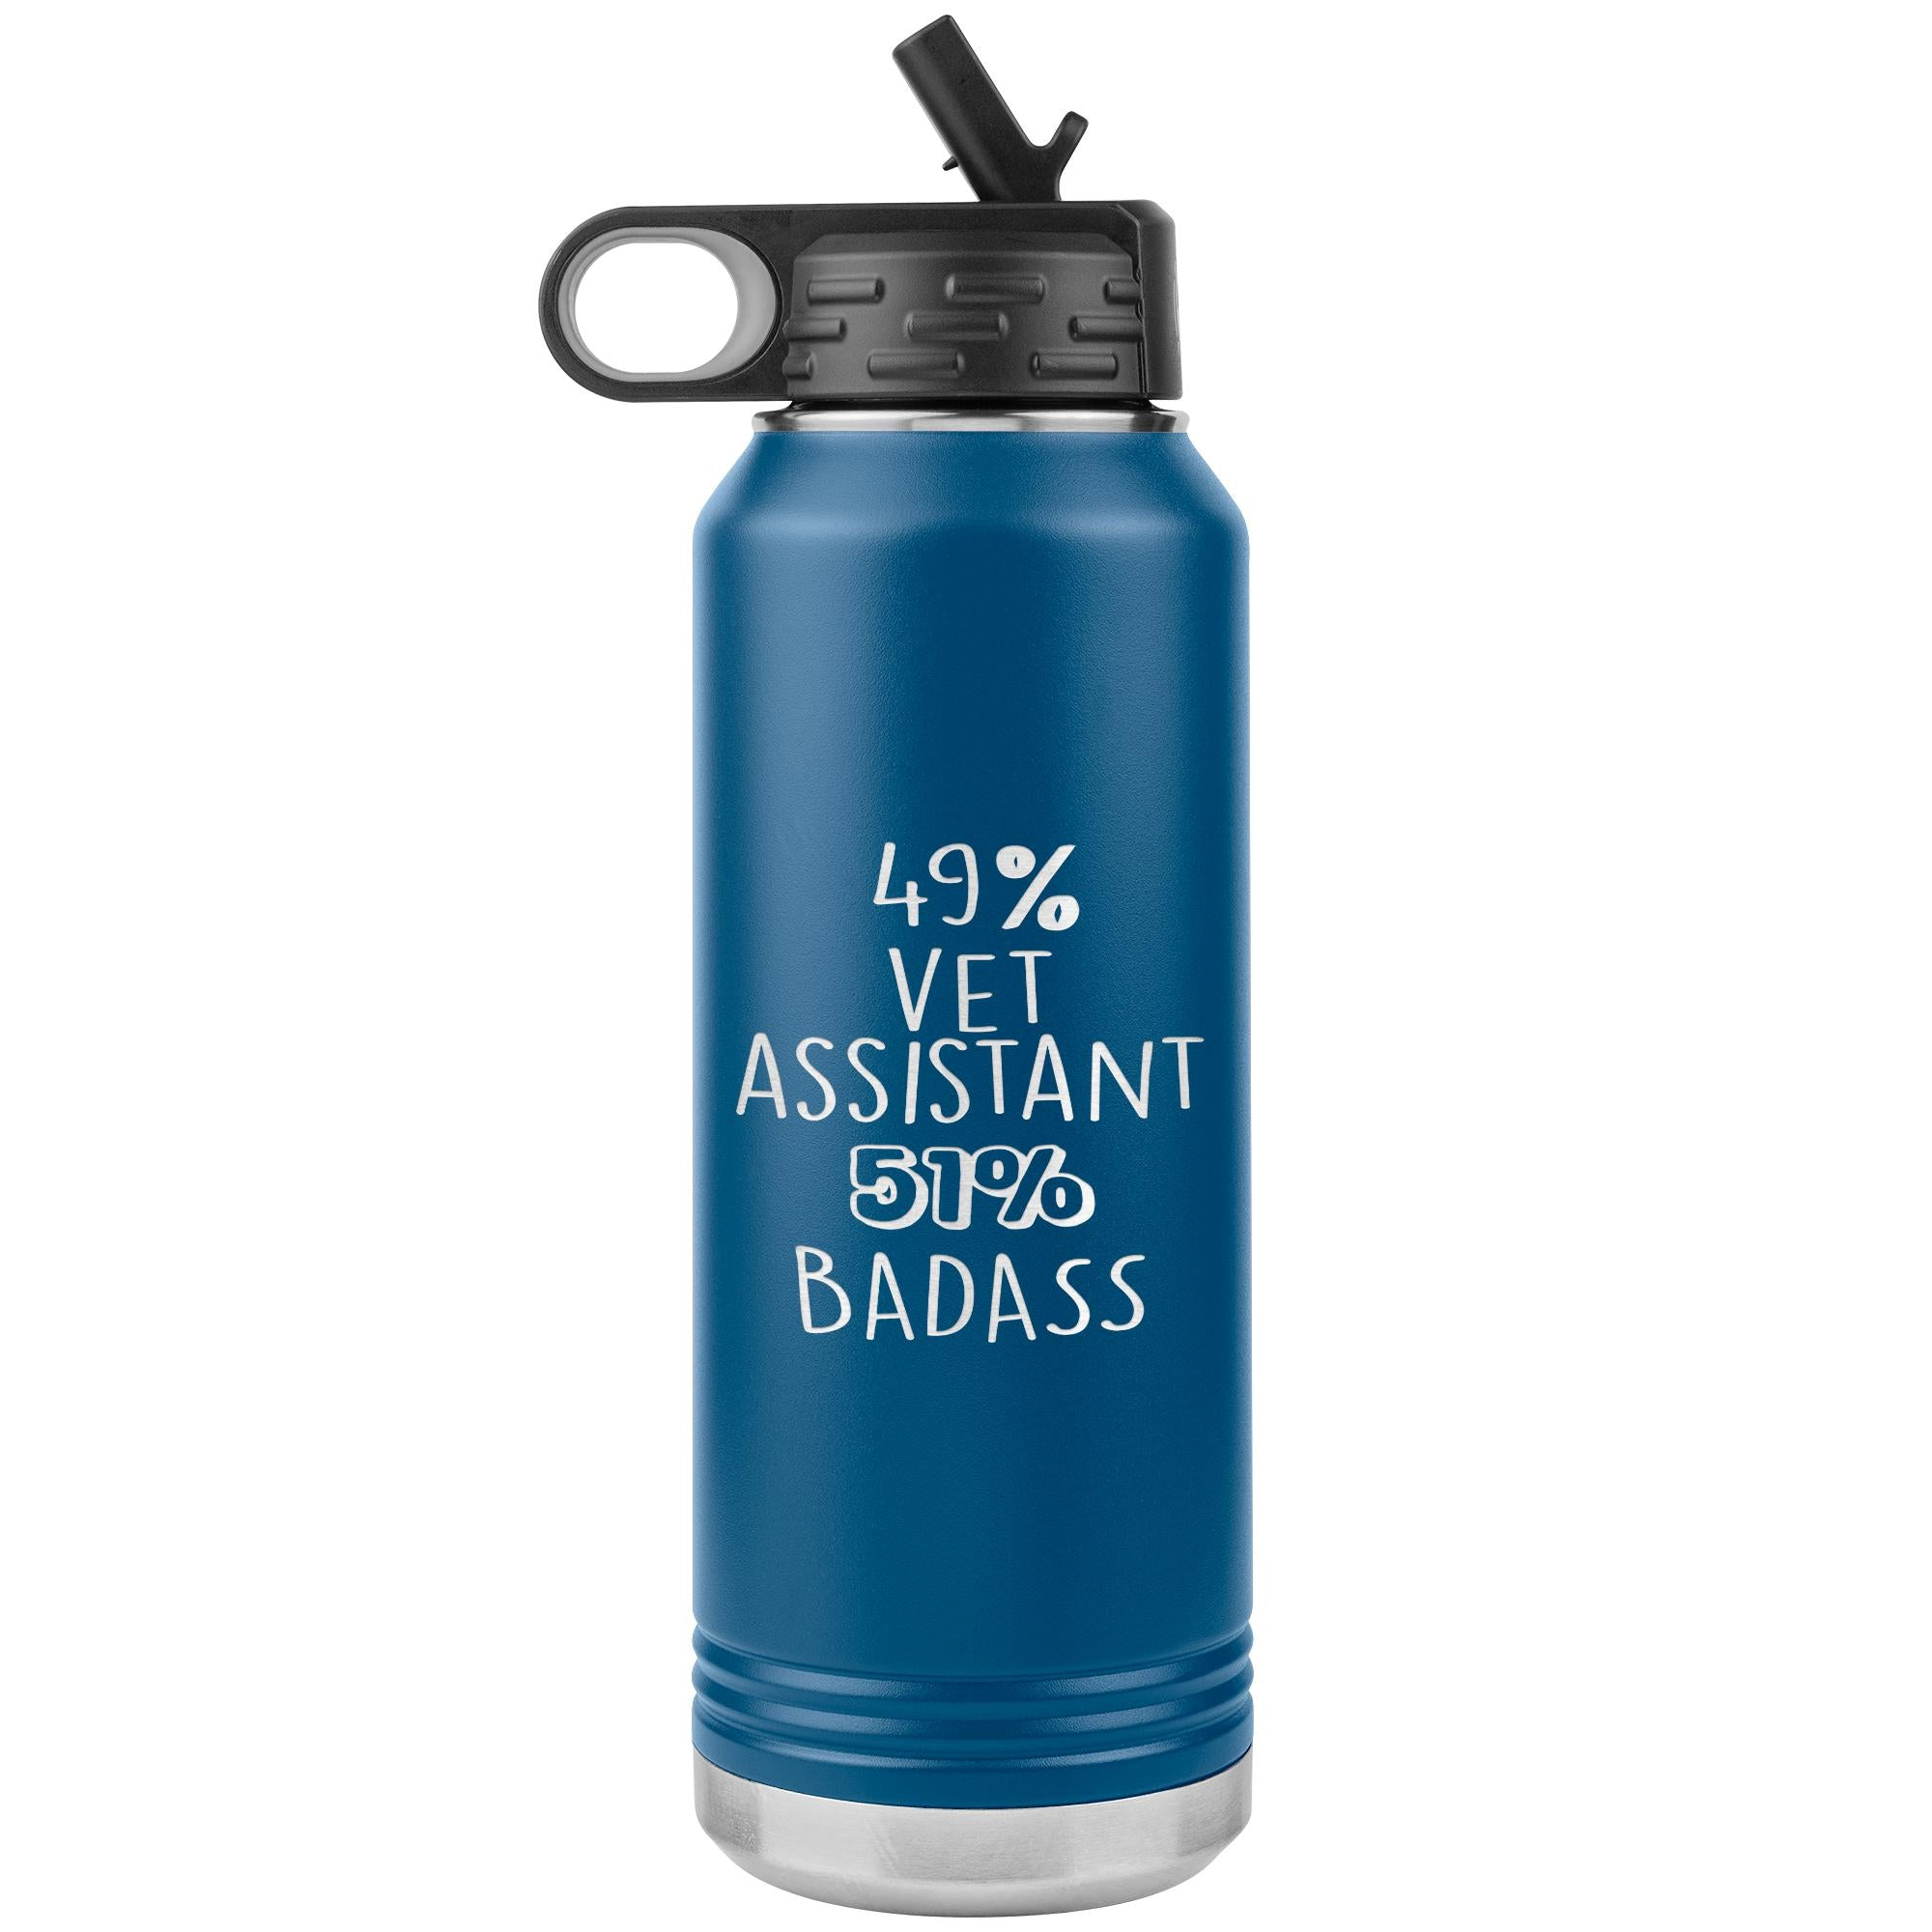 49% Vet Assistant 51% Badass Water Bottle Tumbler 32 oz-Tumblers-I love Veterinary